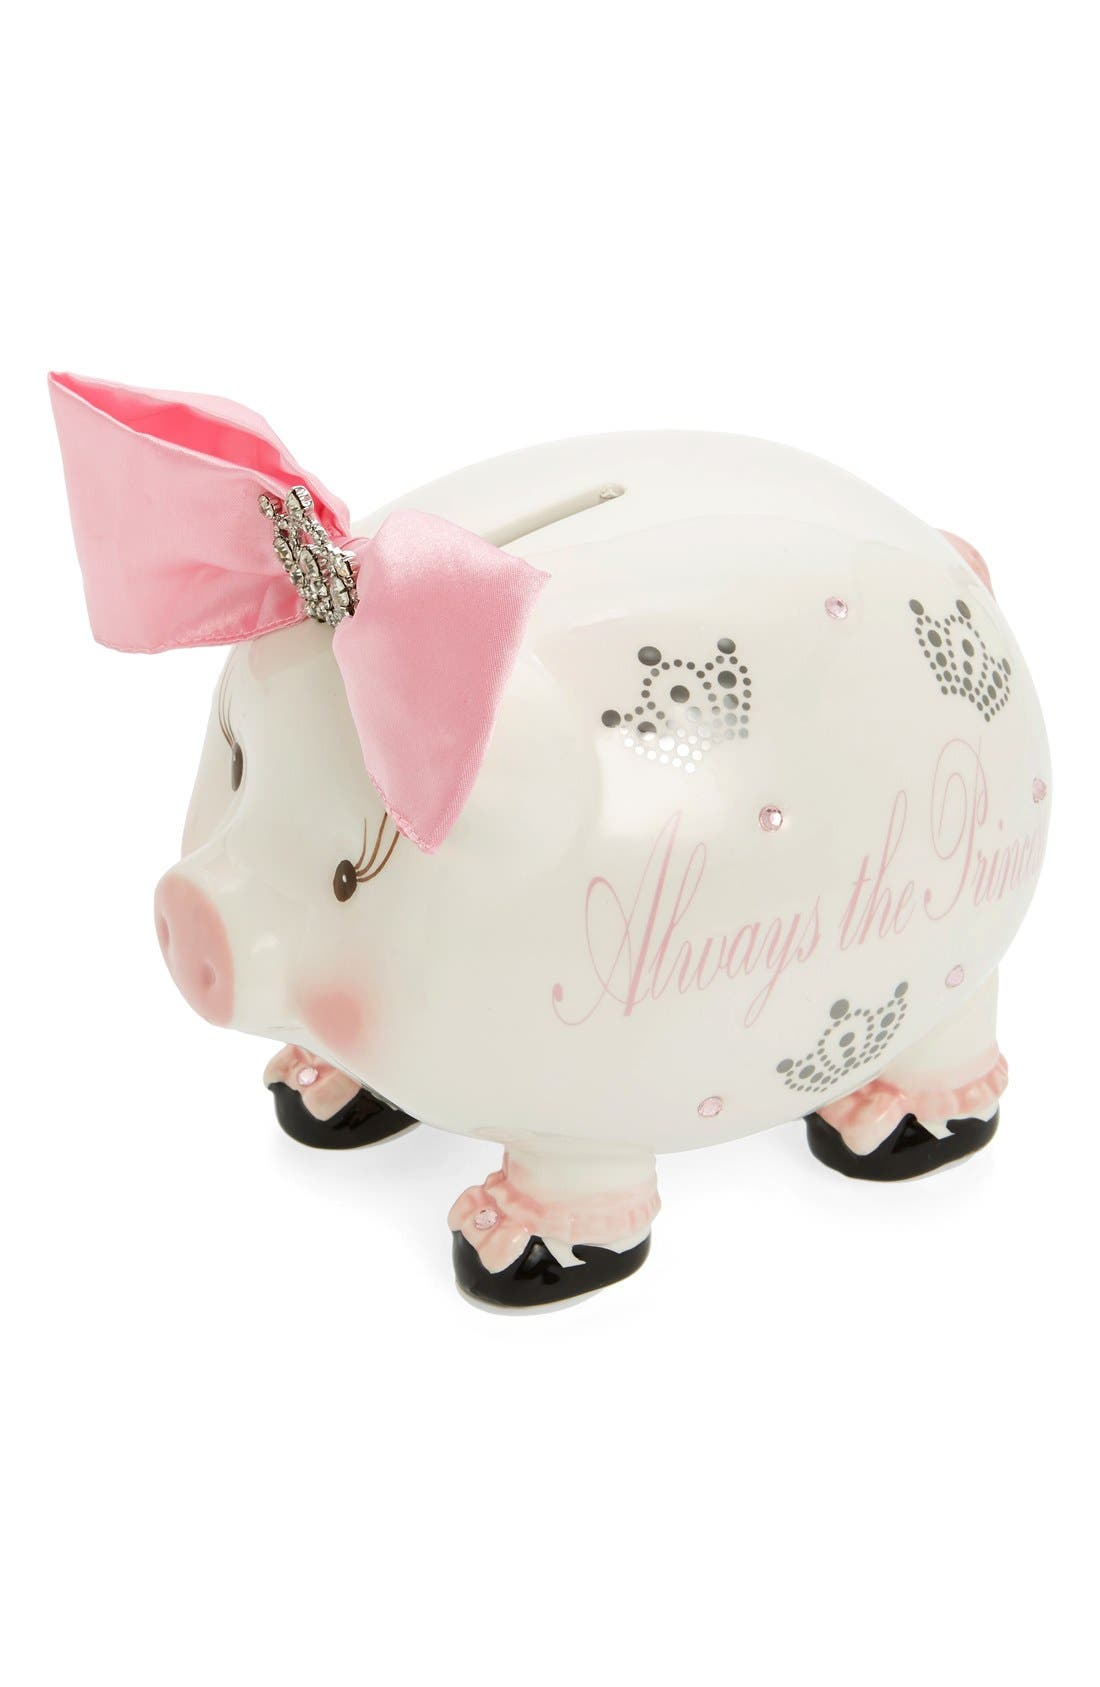 'Always the Princess' Jeweled Piggy Bank,                             Main thumbnail 1, color,                             PINK/ IVORY